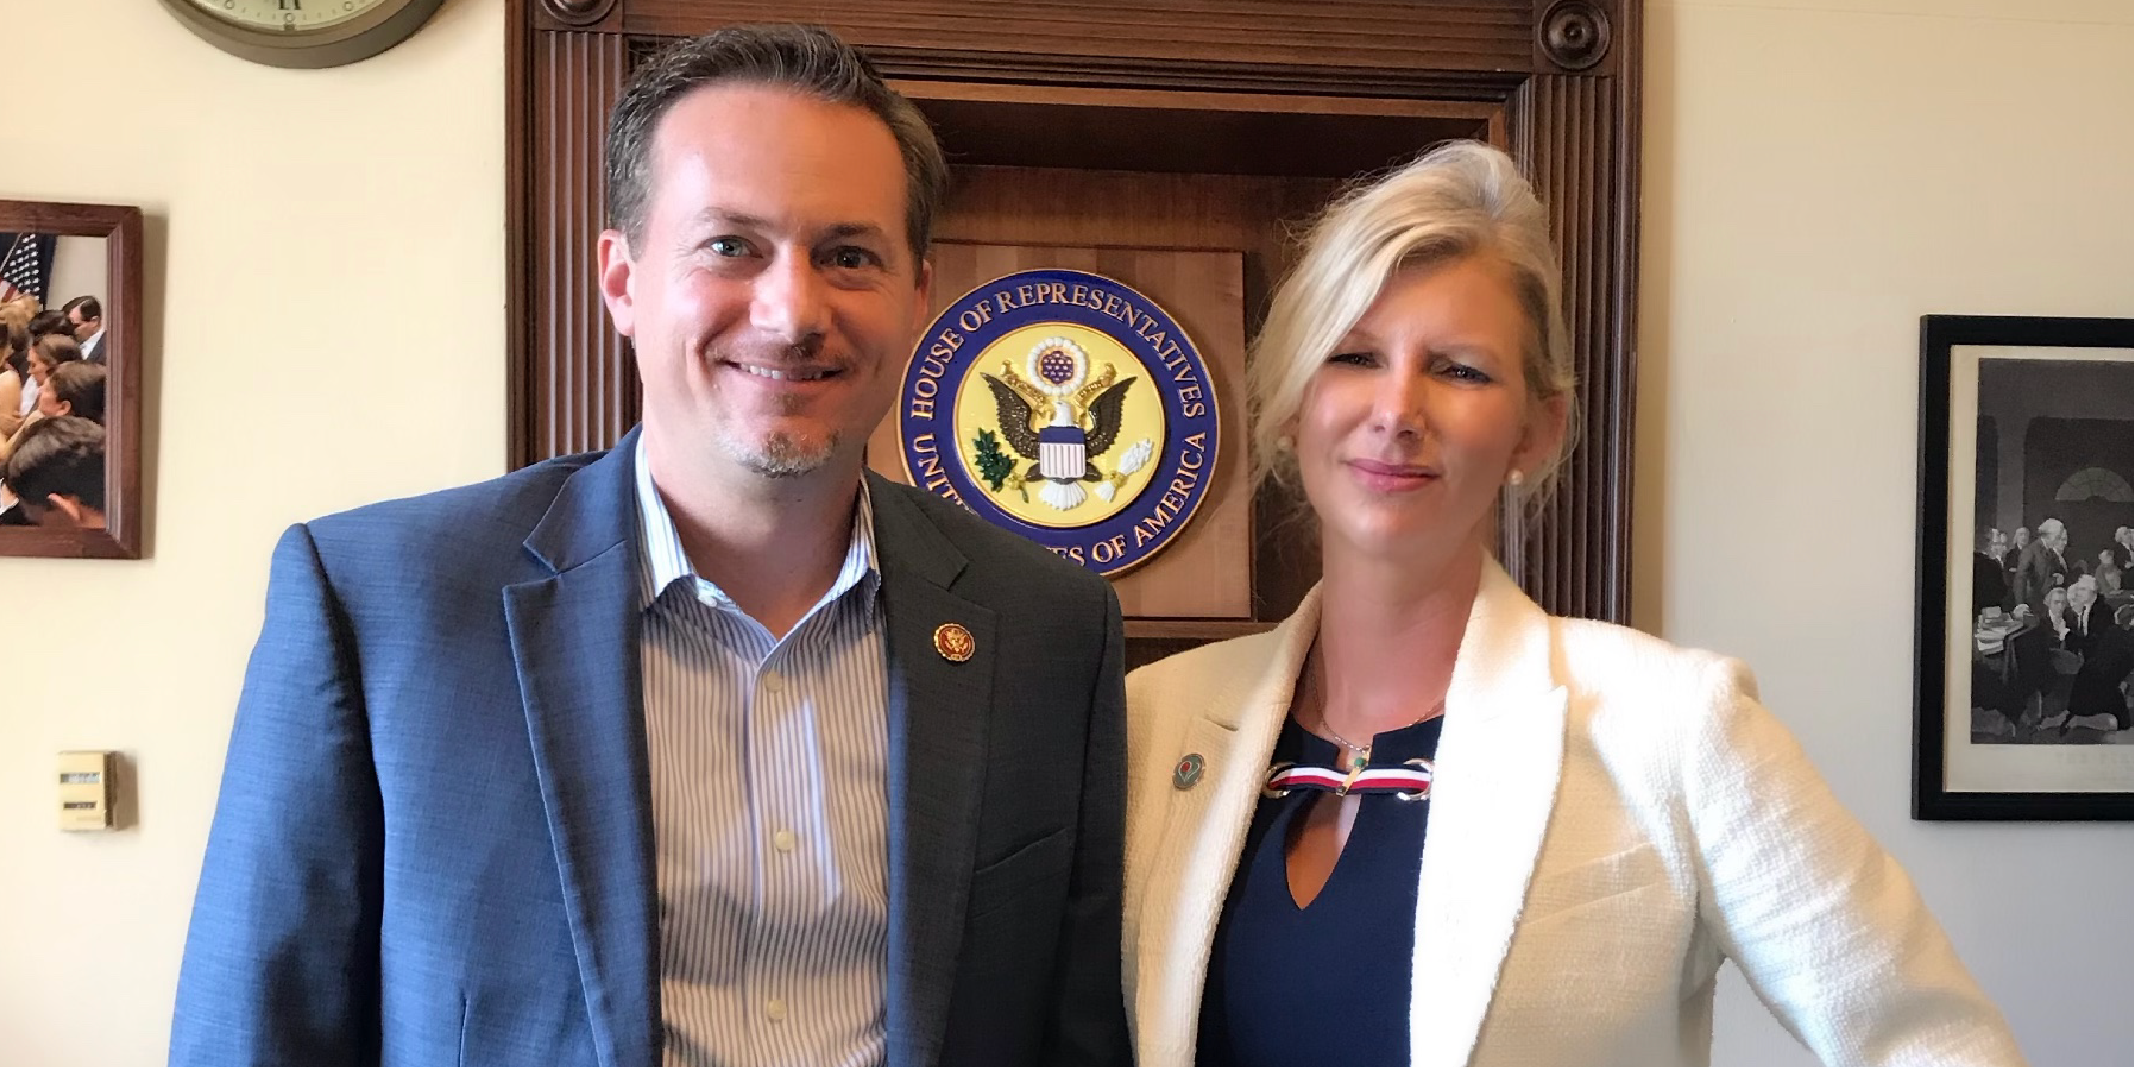 FH Advocate for Awareness, April Donelson with Representative Michael Cloud in Washington DC